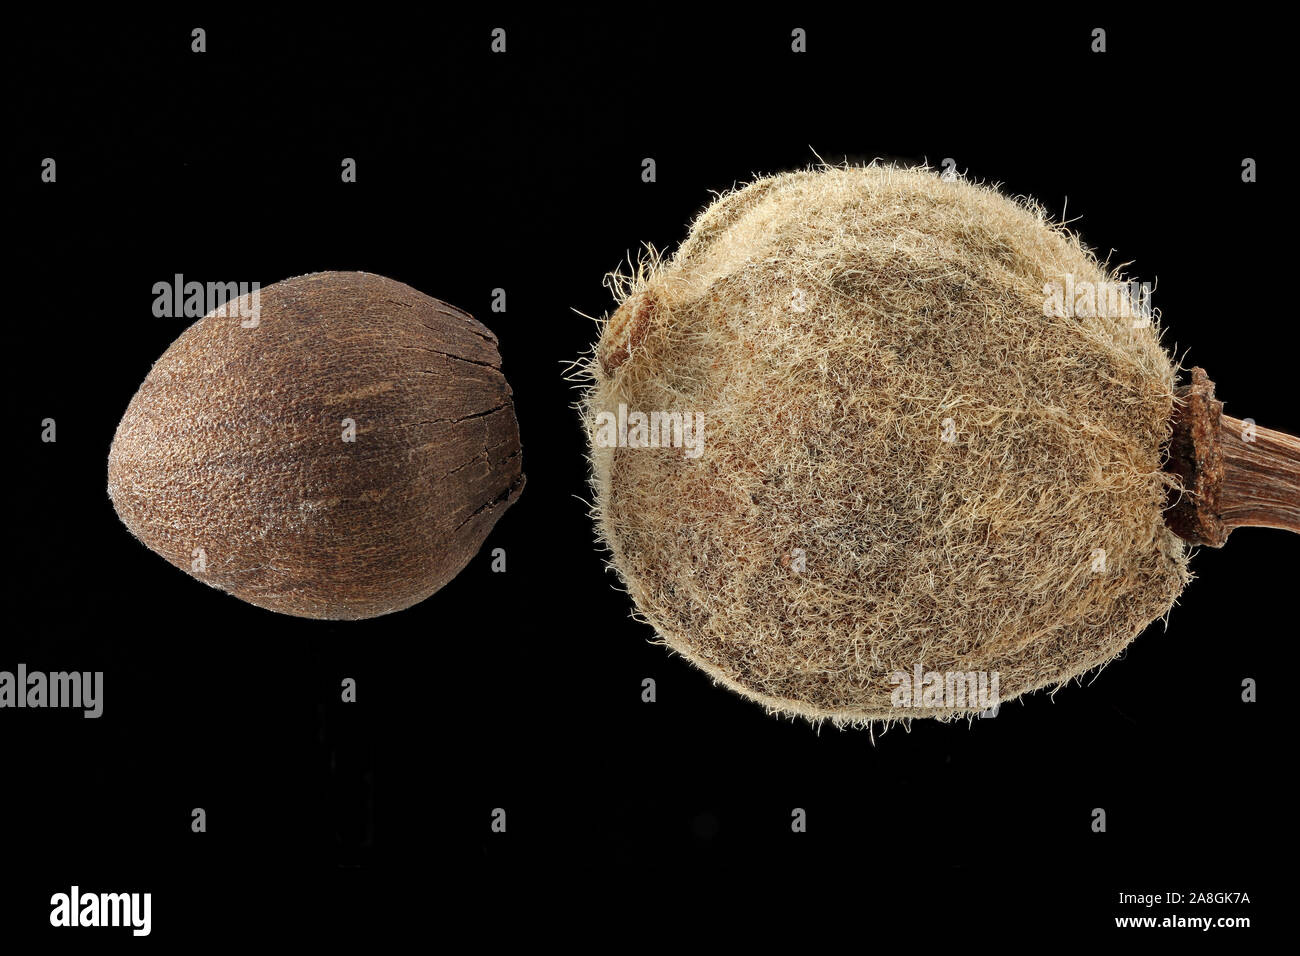 Tilia platyphyllos, Large-leaved lime, Sommer-Linde, seed and fruit, close up Stock Photo